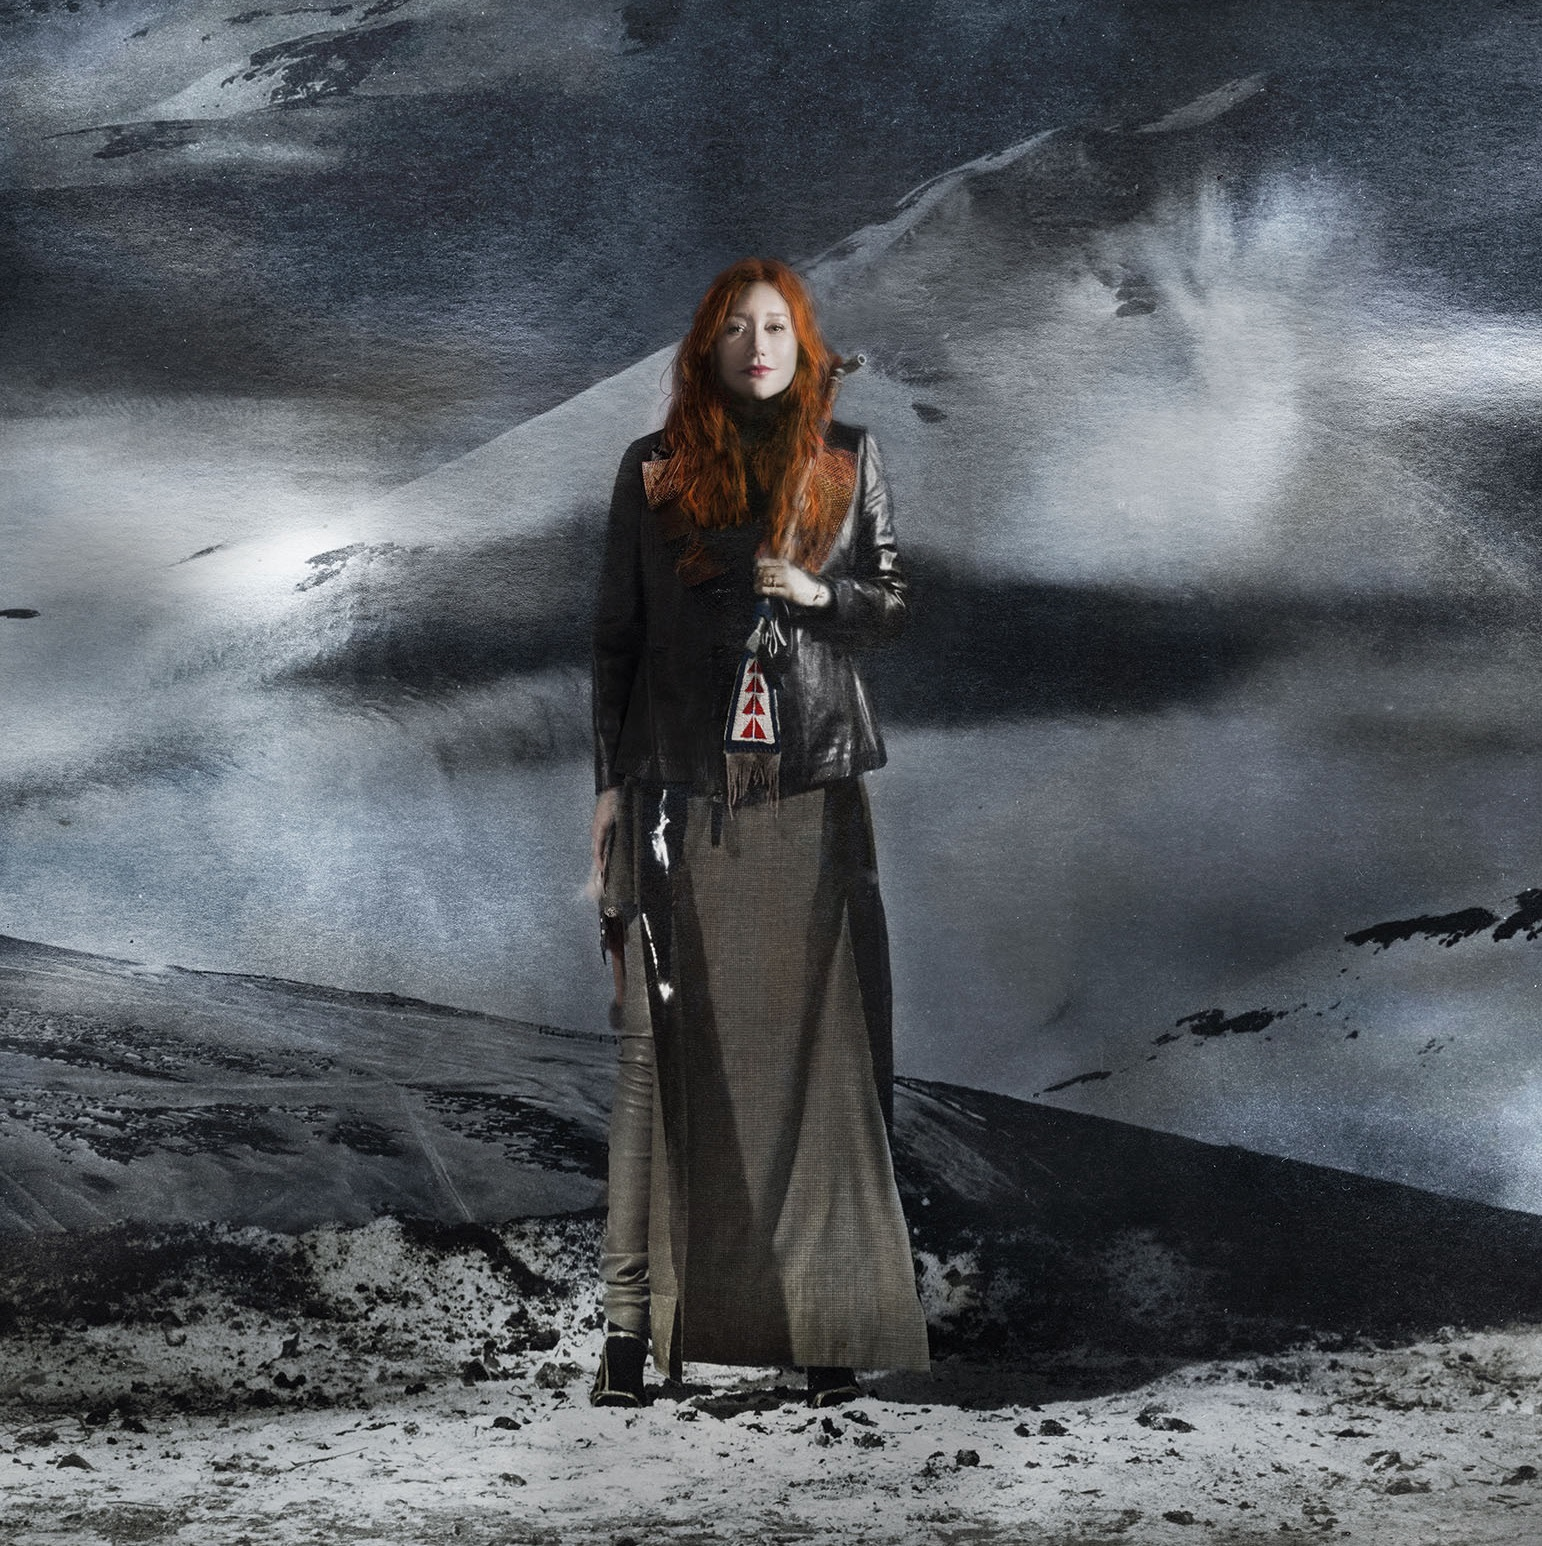 photoshoot picture of Tori Amos for her album Native Invader